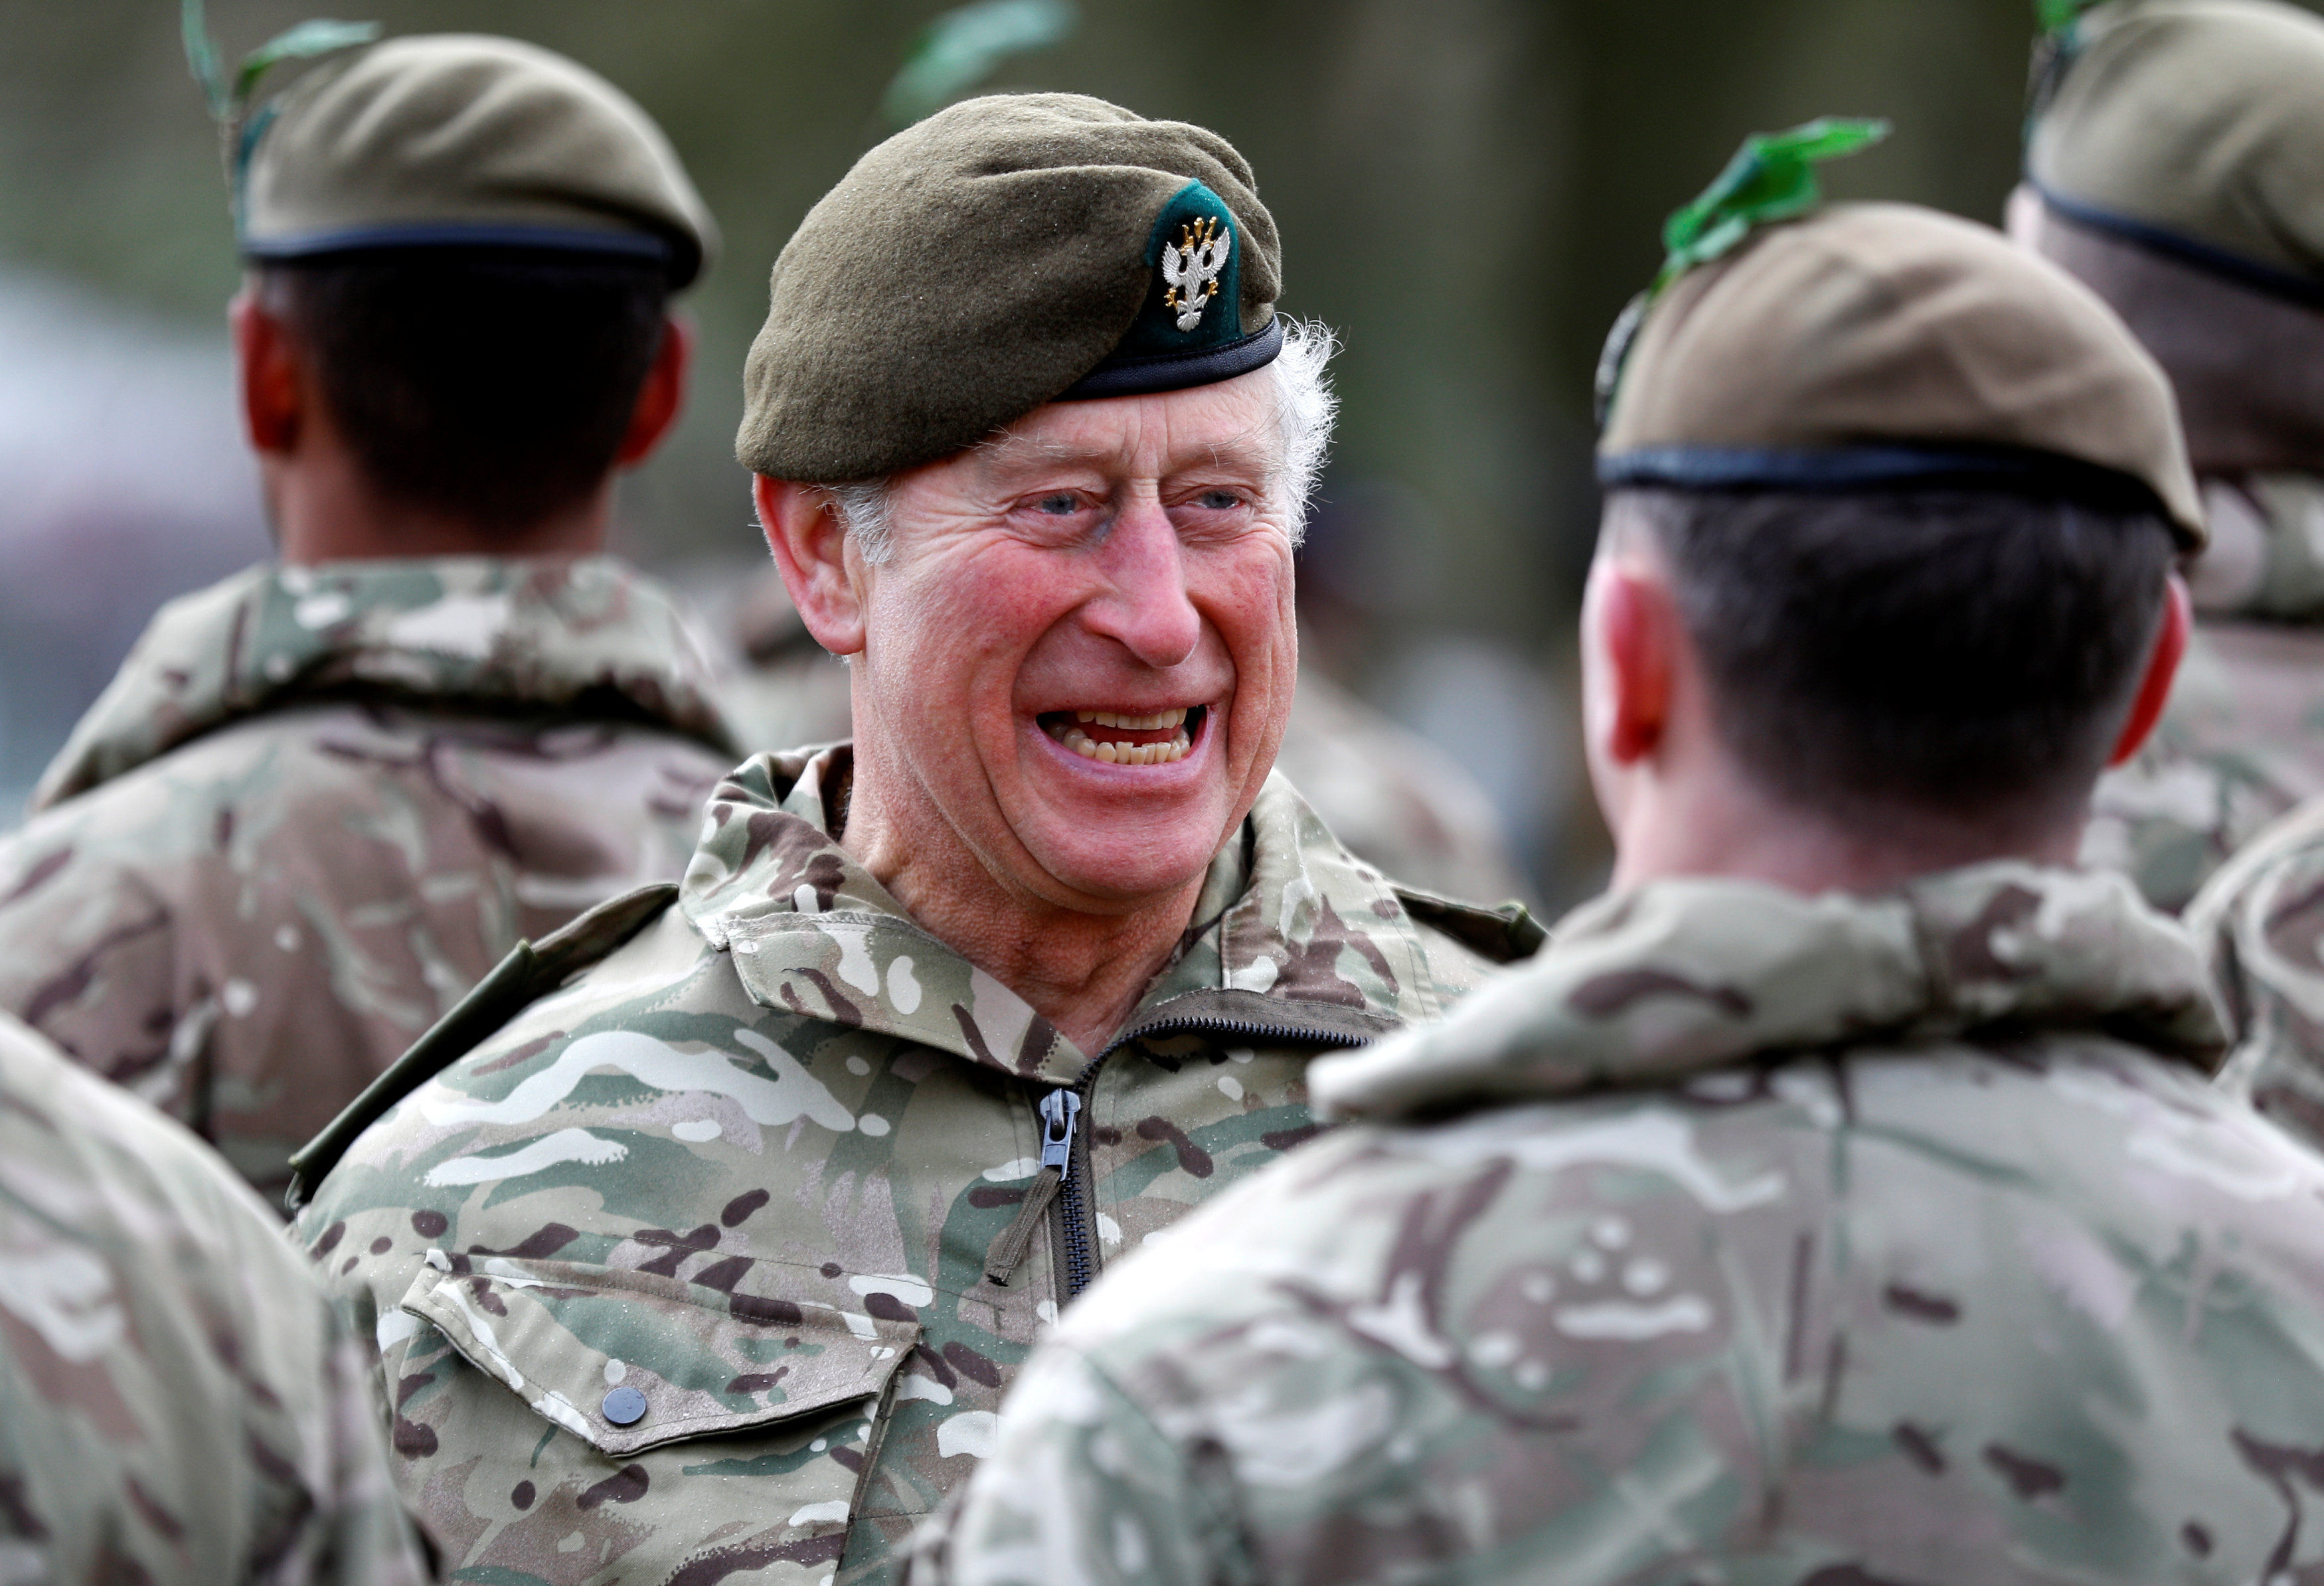 The Prince of Wales inspects troops during his visit to the 1st Battalion the Mercian Regiment